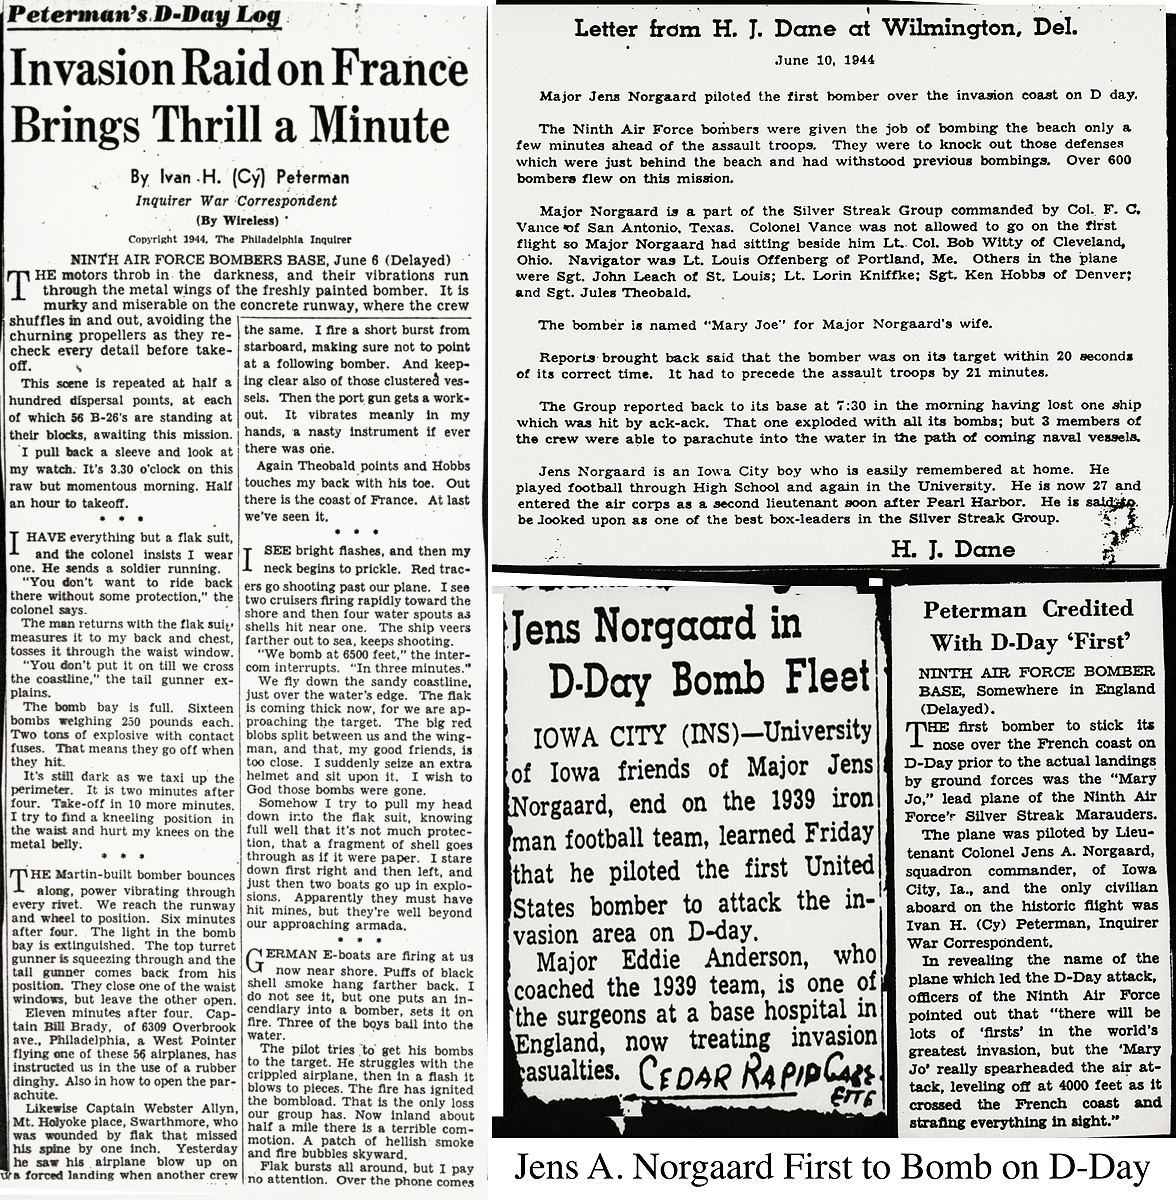 Norgaard Leads D-Day clippings